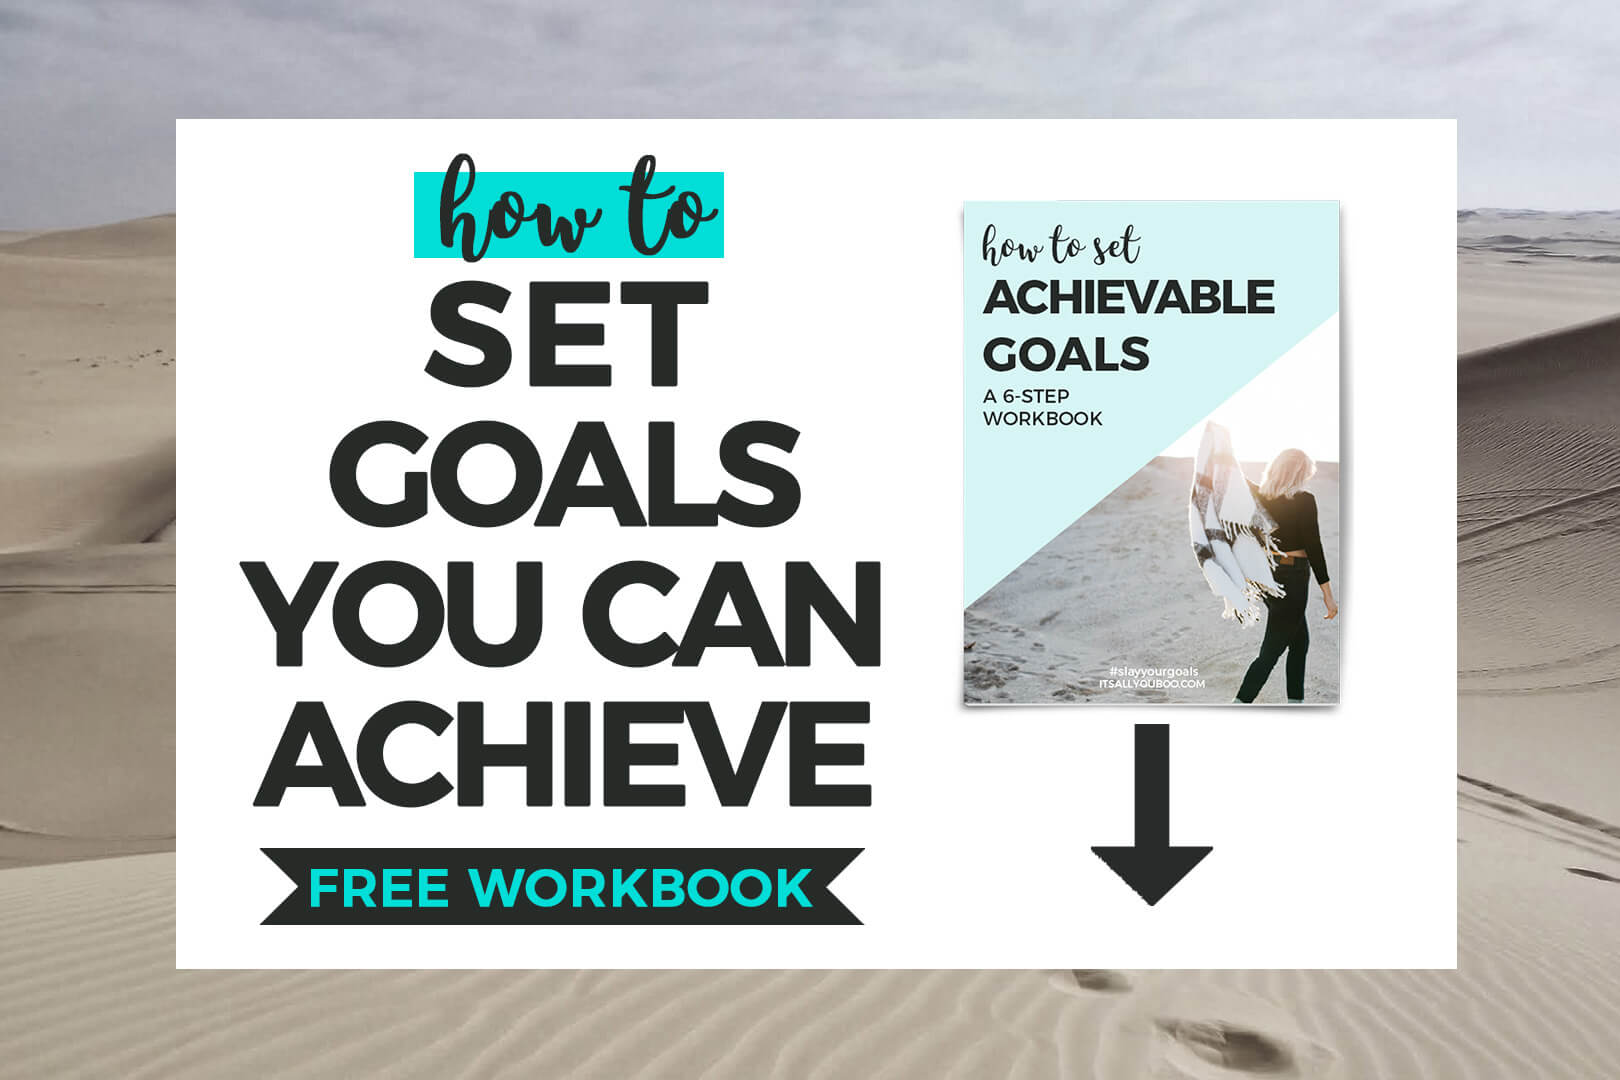 How to Set Achievable Goals FREE WORKBOOK with preview image of free download